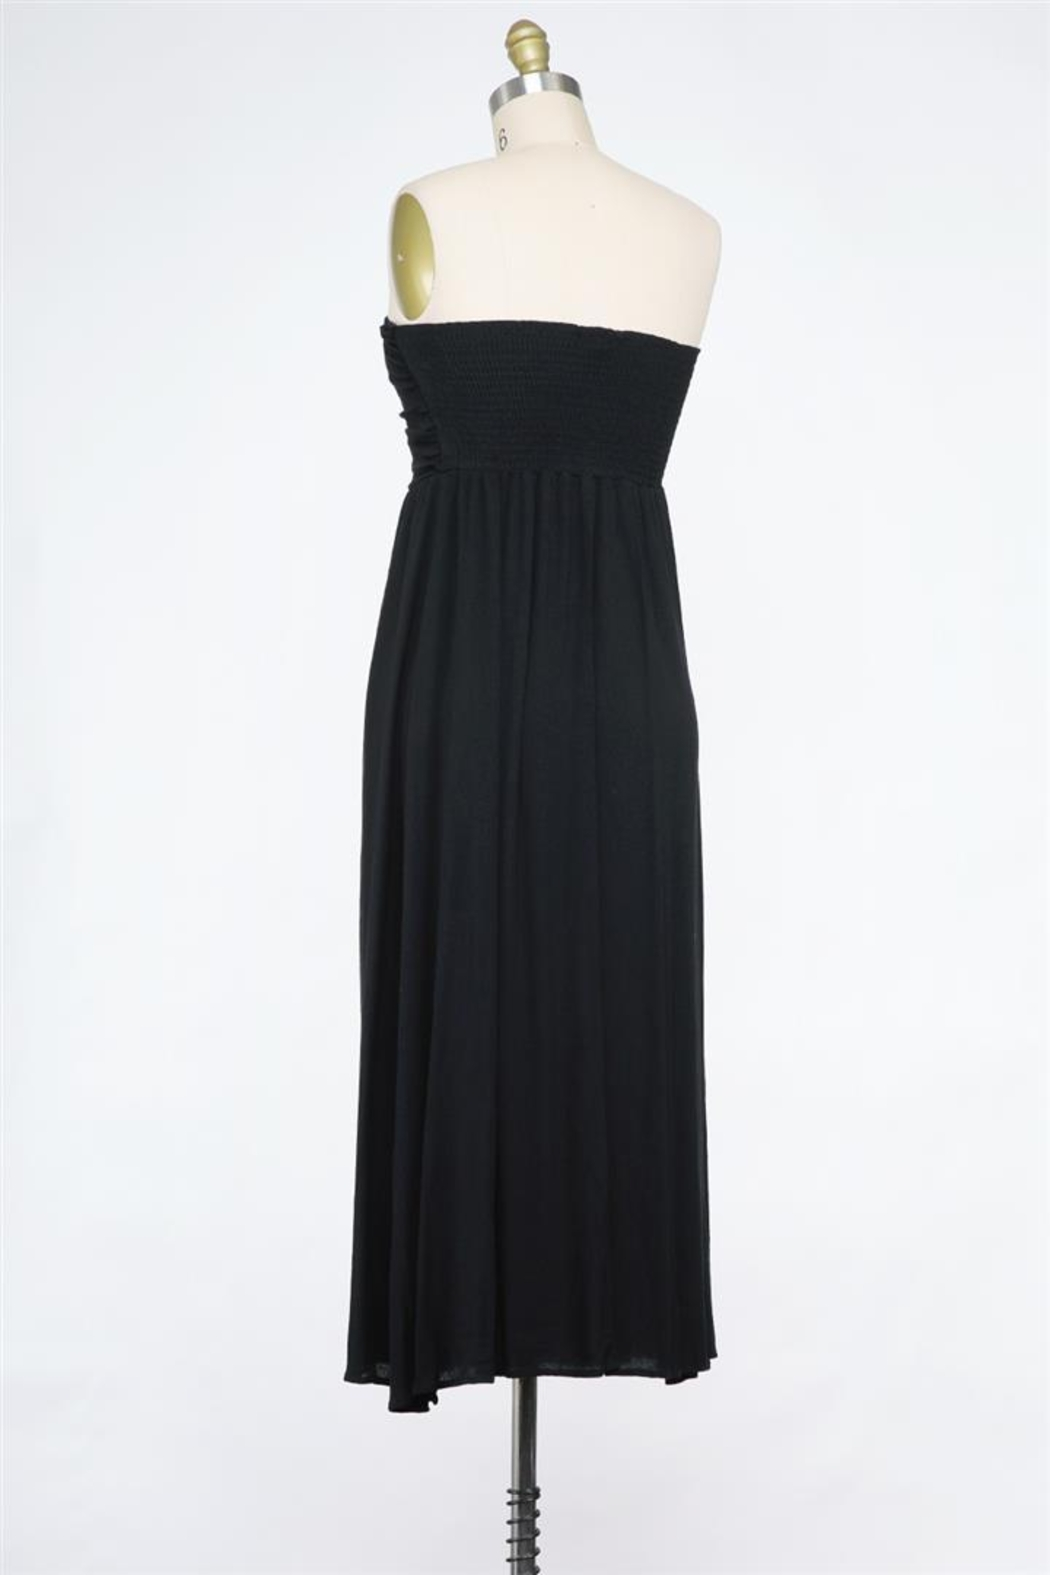 Final Touch Tied And True Strapless Tube Dress (Available In 2 Colors Black & Blush) - Front Full Image